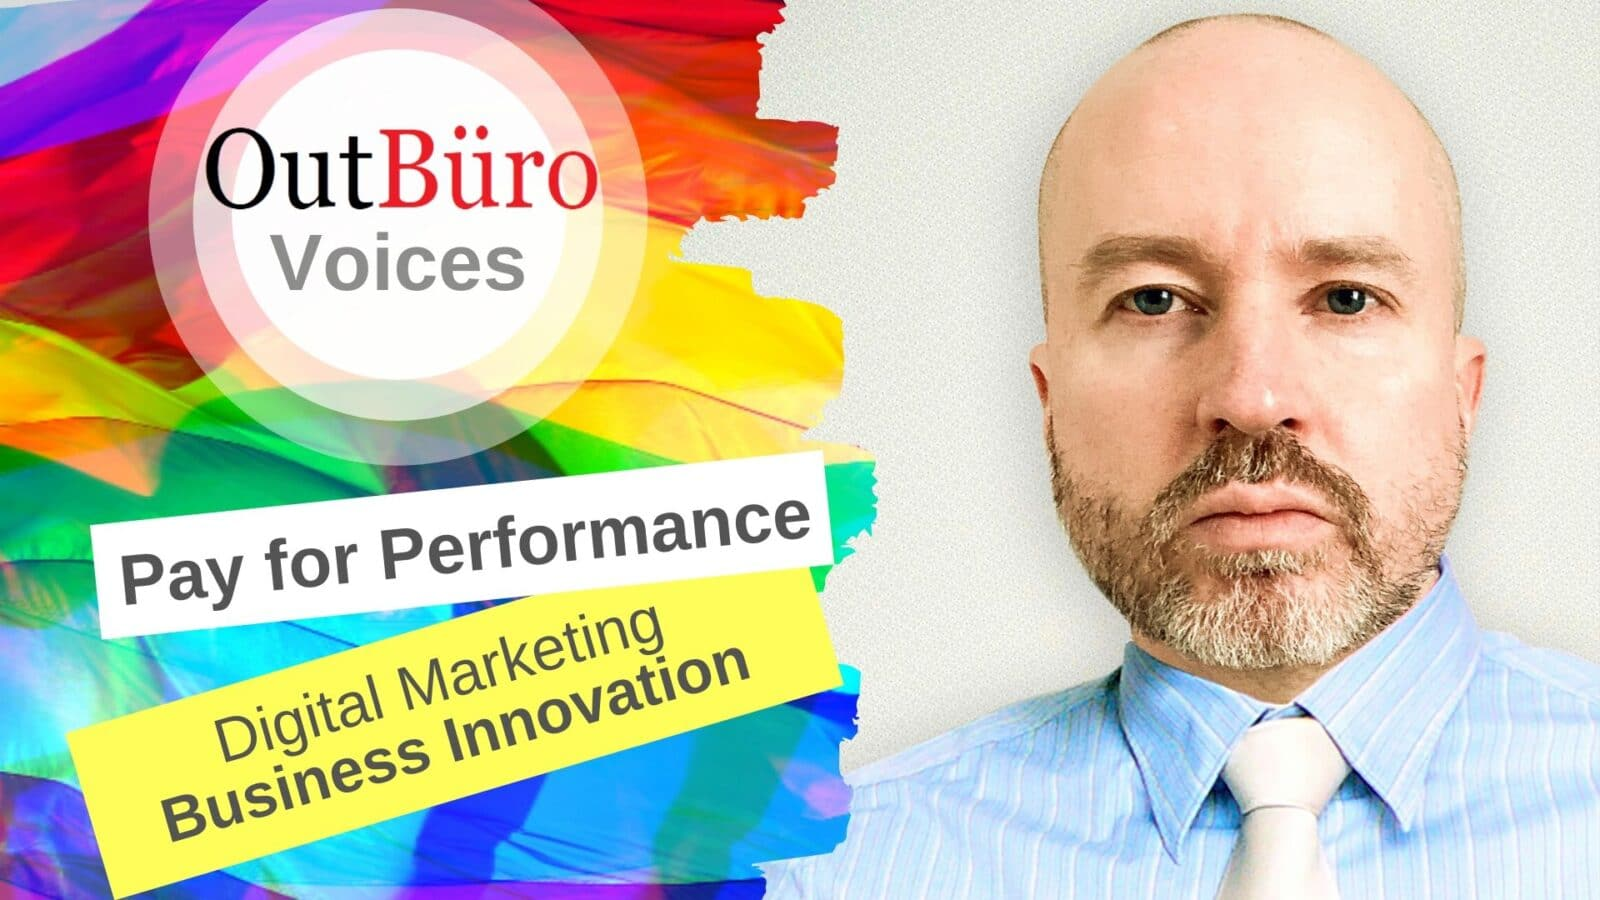 Louis Waters Digital Marketing South Africa Pay for Performance ROI Lgbt entrepreneur gay professional business owner Video Interview Podcast (1)